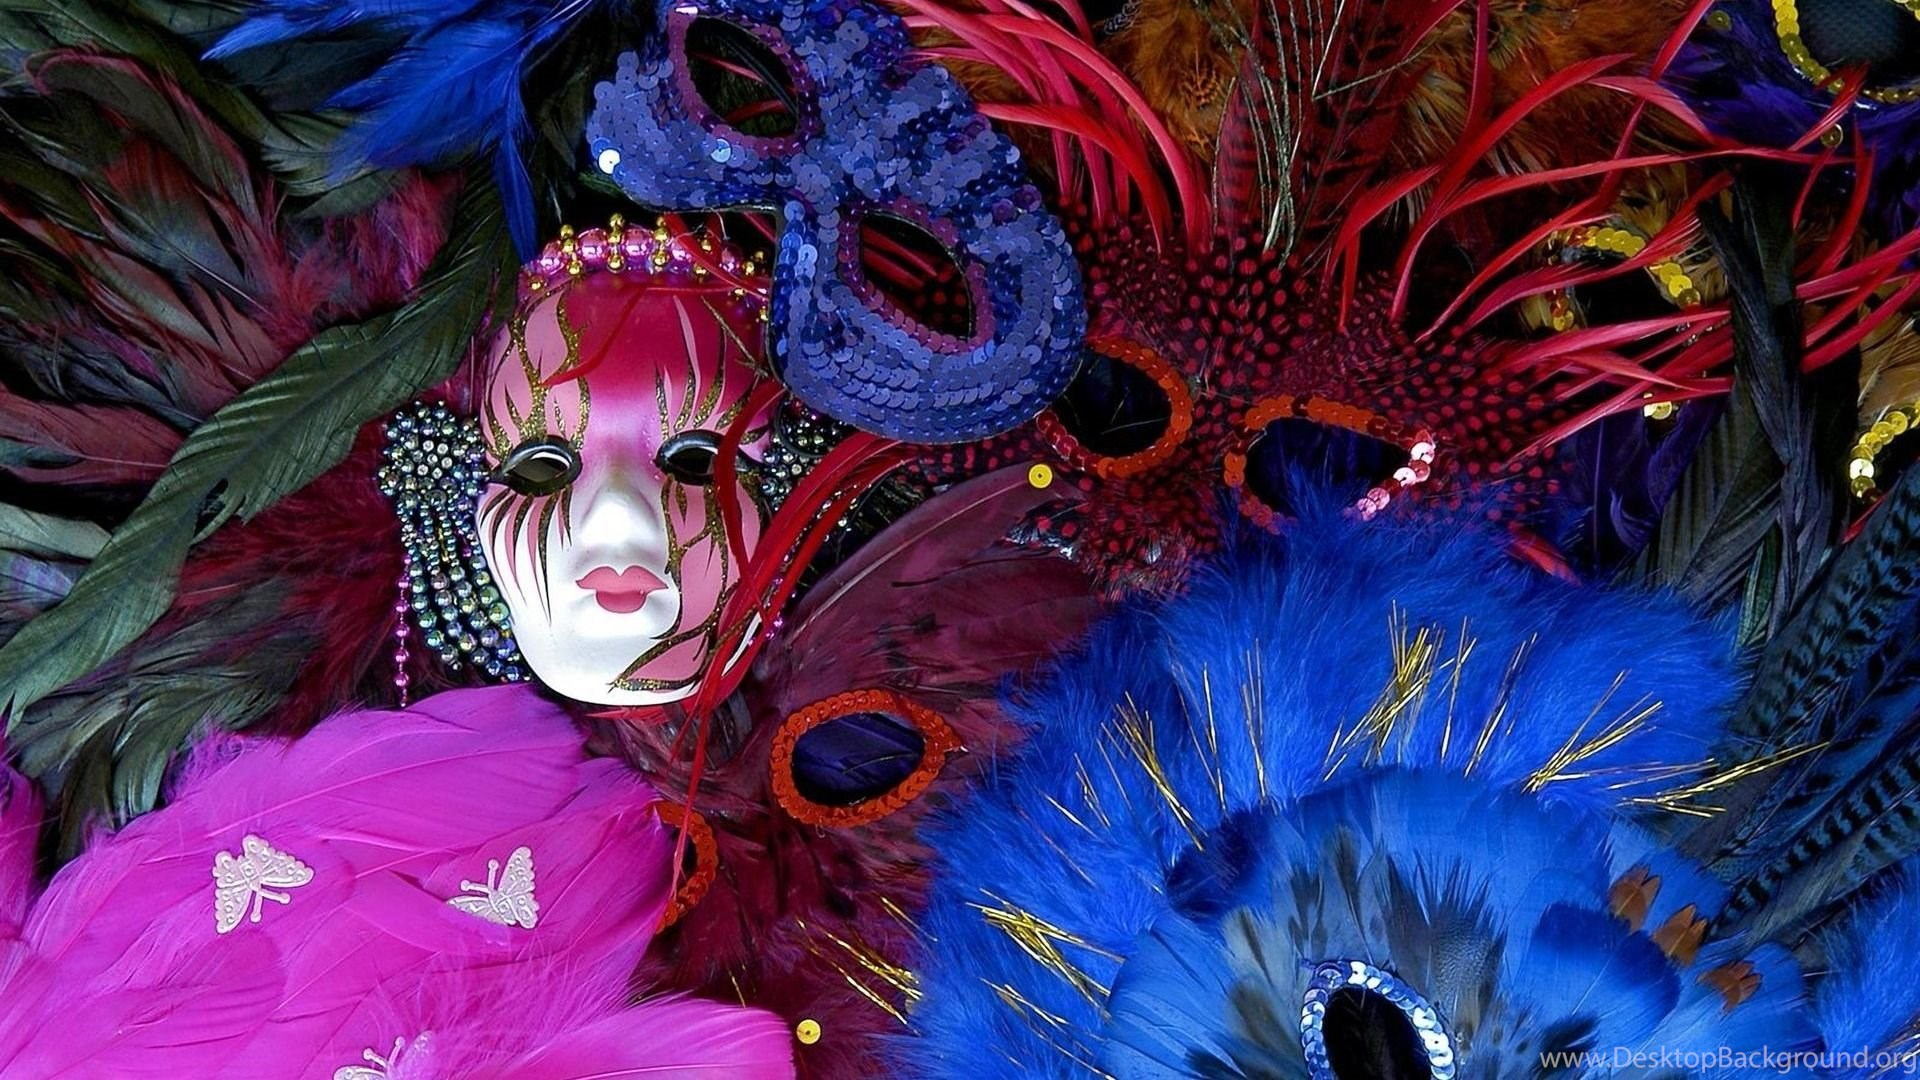 mardi gras hd wallpapers free download desktop background